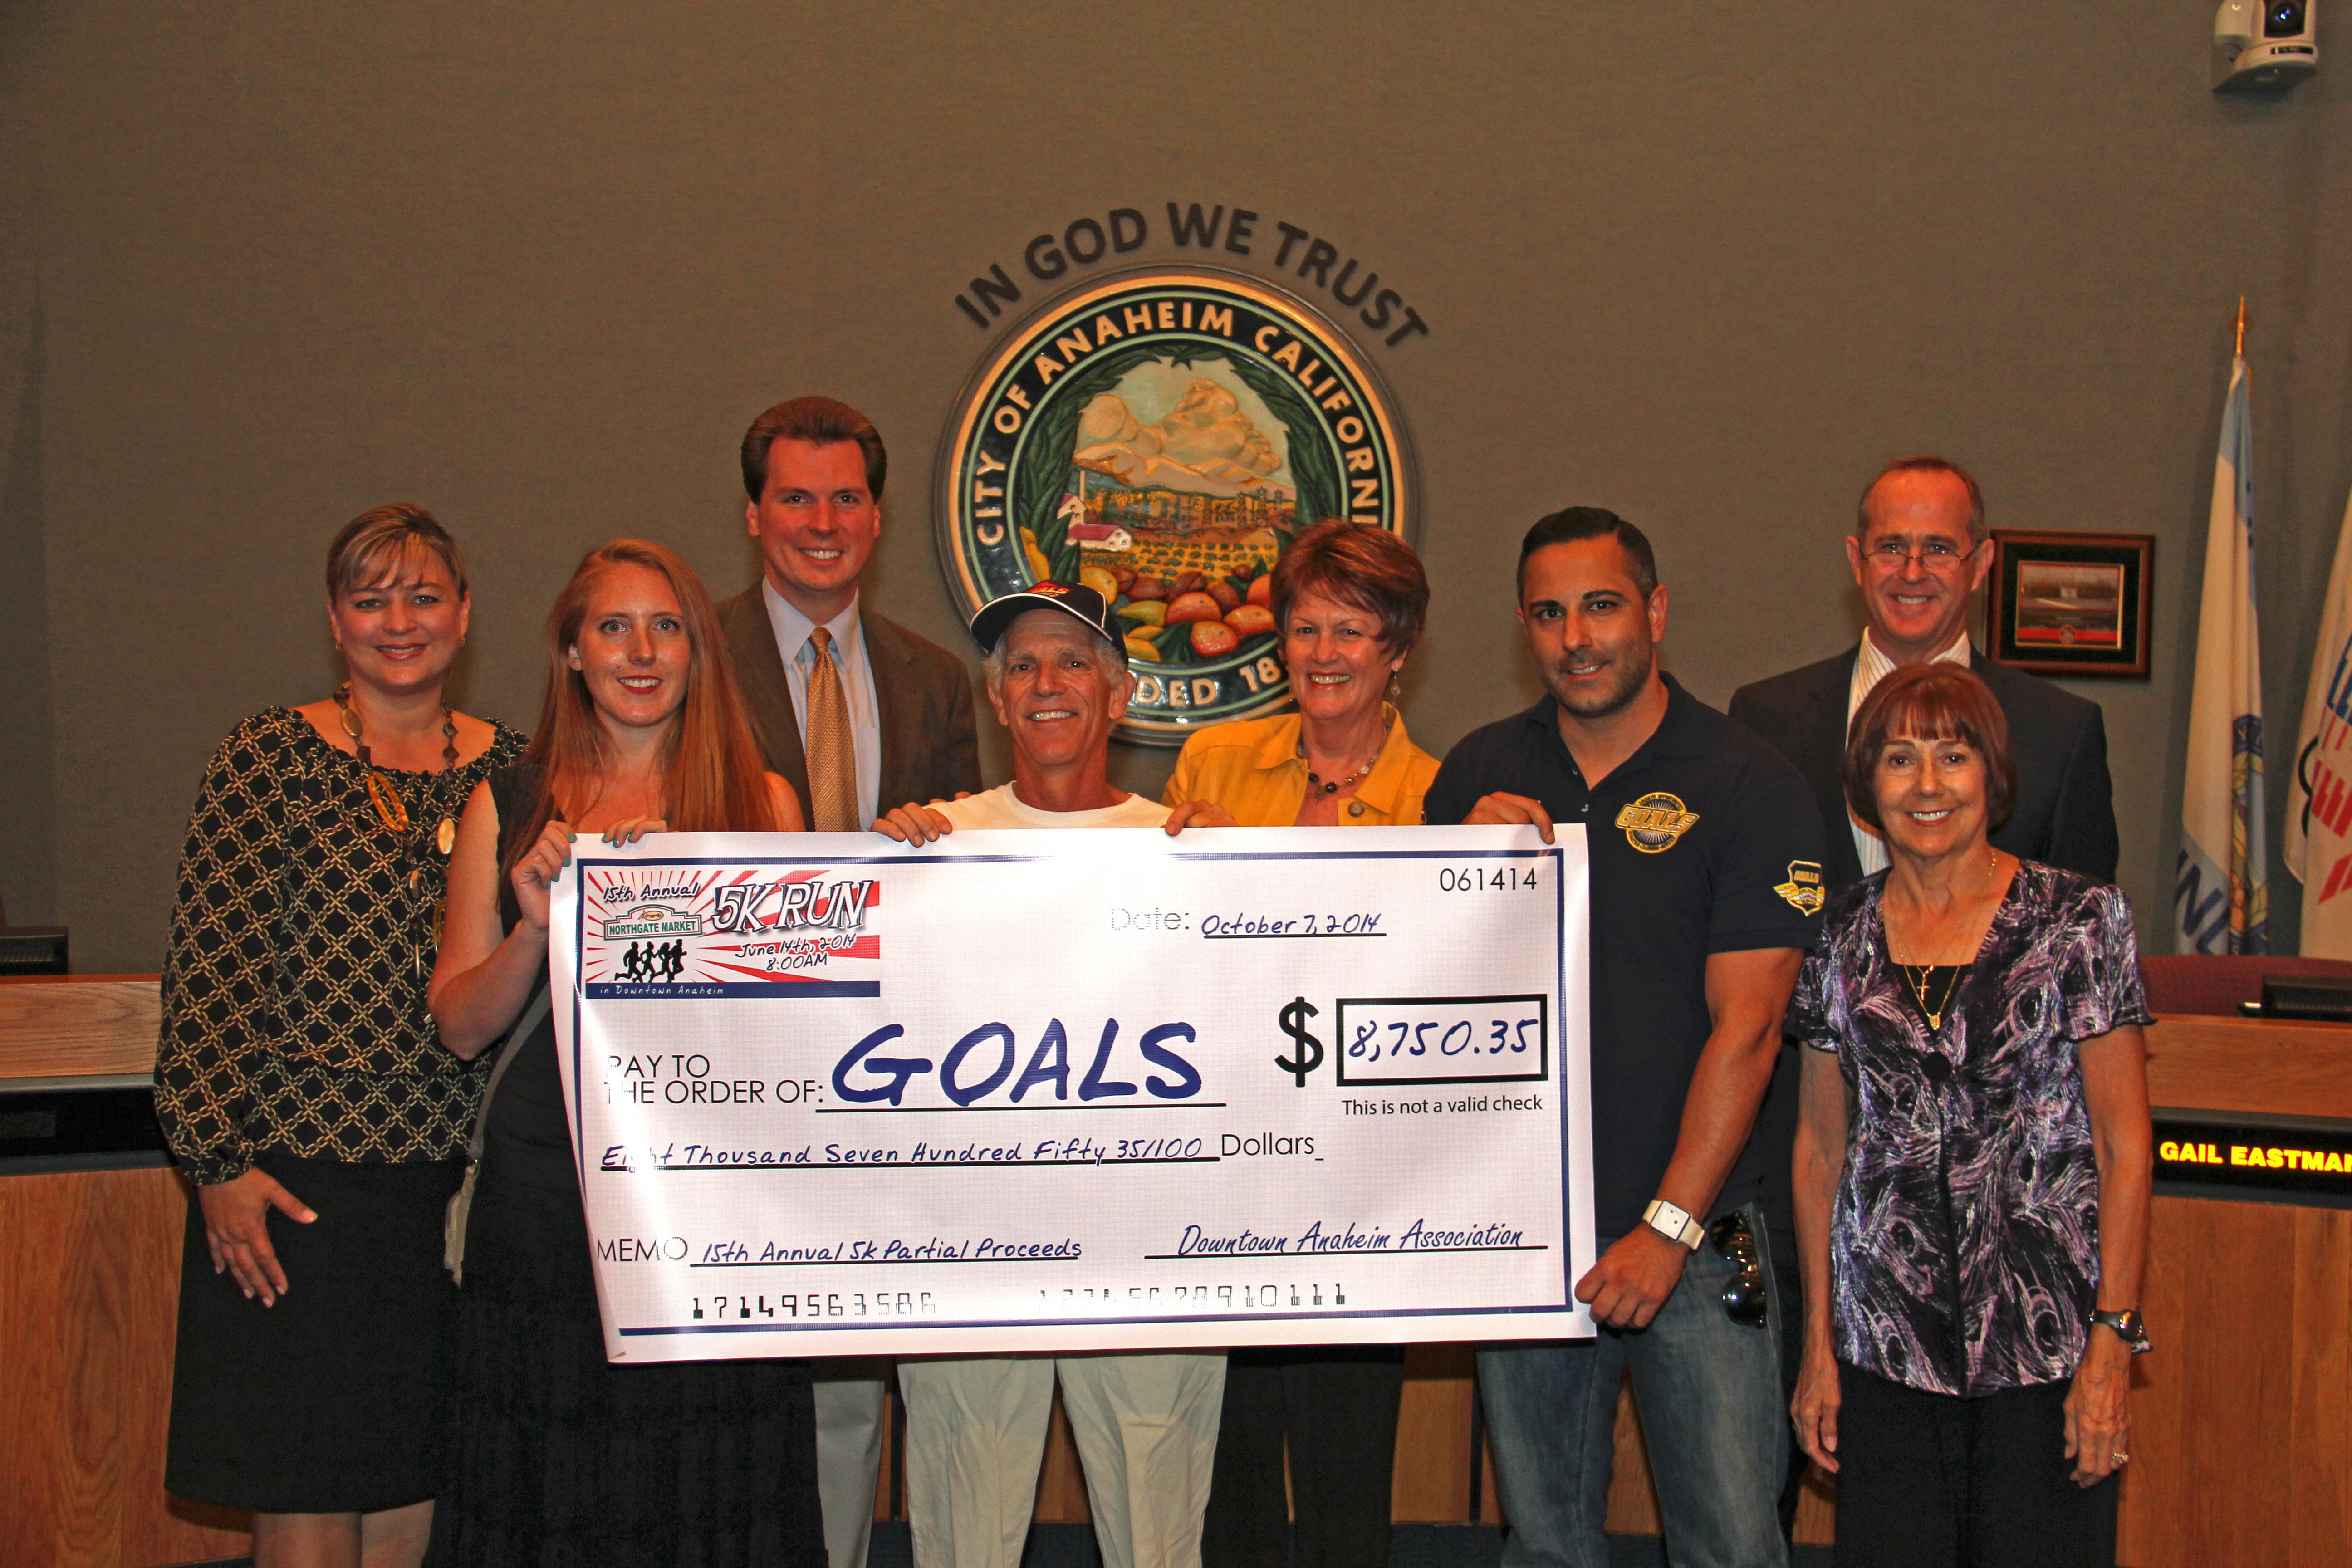 Giant check for the 15th annual 5k partial proceeds for Downtown Anaheim Association